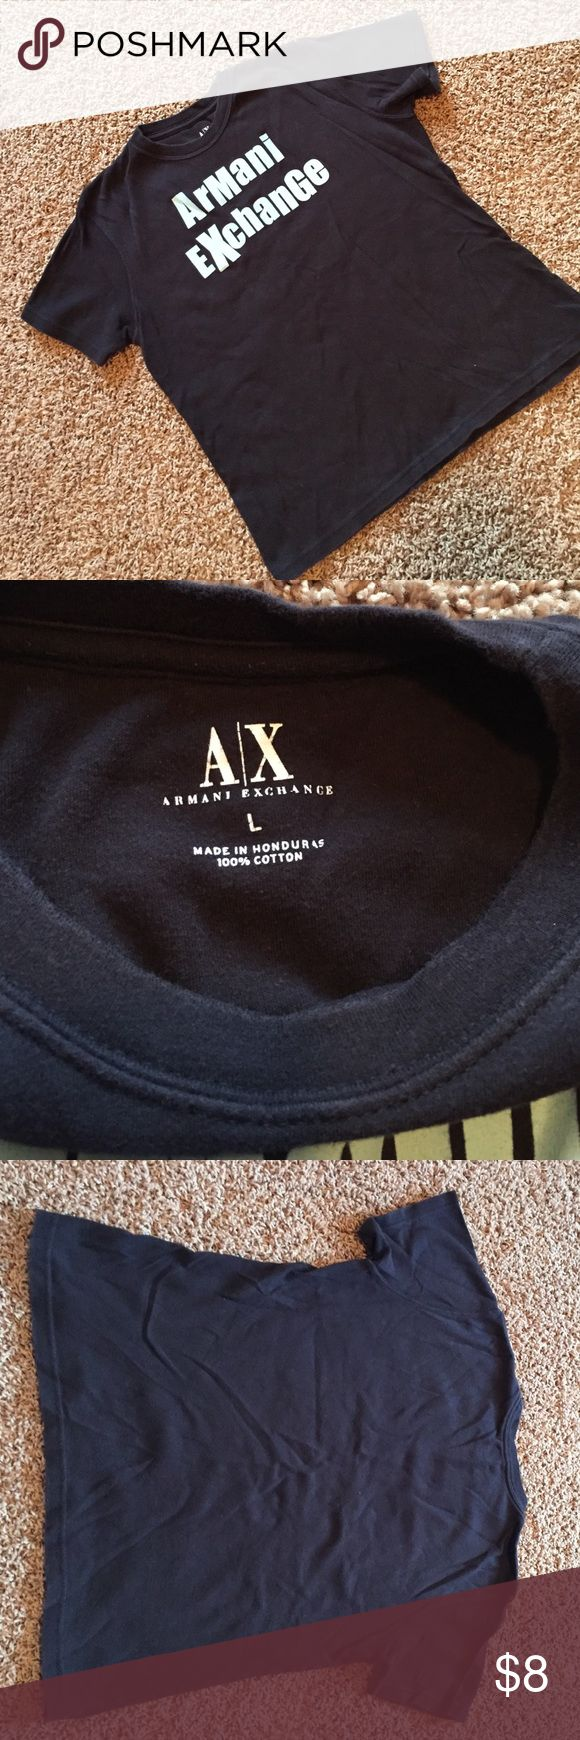 "Armani Exchange fun vintage baby tee black This one is a throwback! Do you miss the baby tee days? This cute 100% cotton tee from Armani exchange is from the era of the baby tee. It's marked as a size large but definitely runs small in typical baby tee style. 22"" from shoulder to hem, bust 18.5"" across. Fun! A/X Armani Exchange Tops Tees - Short Sleeve"